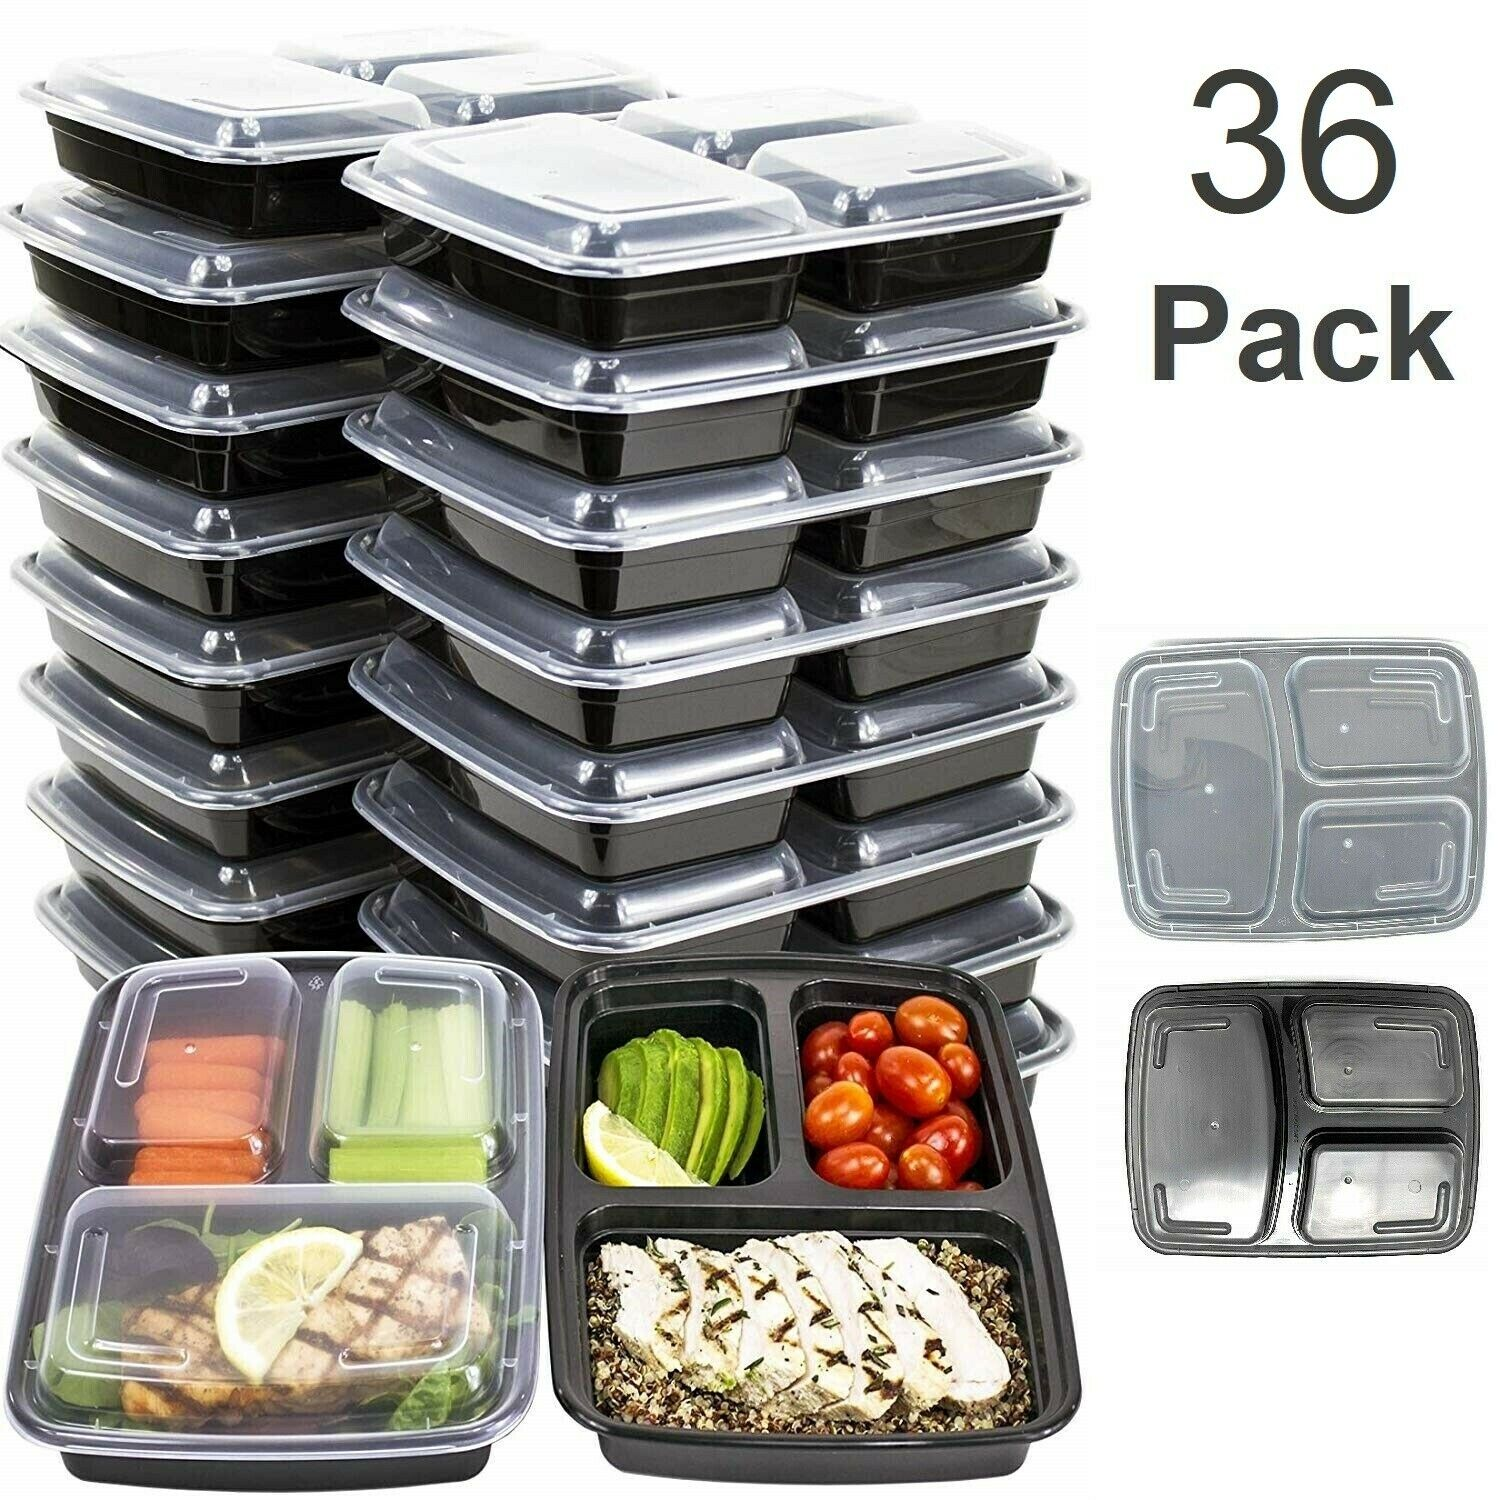 MEAL PREP CONTAINERS Microwave Safe 3 Compartment Reusable Food Storage 36 PACK 1